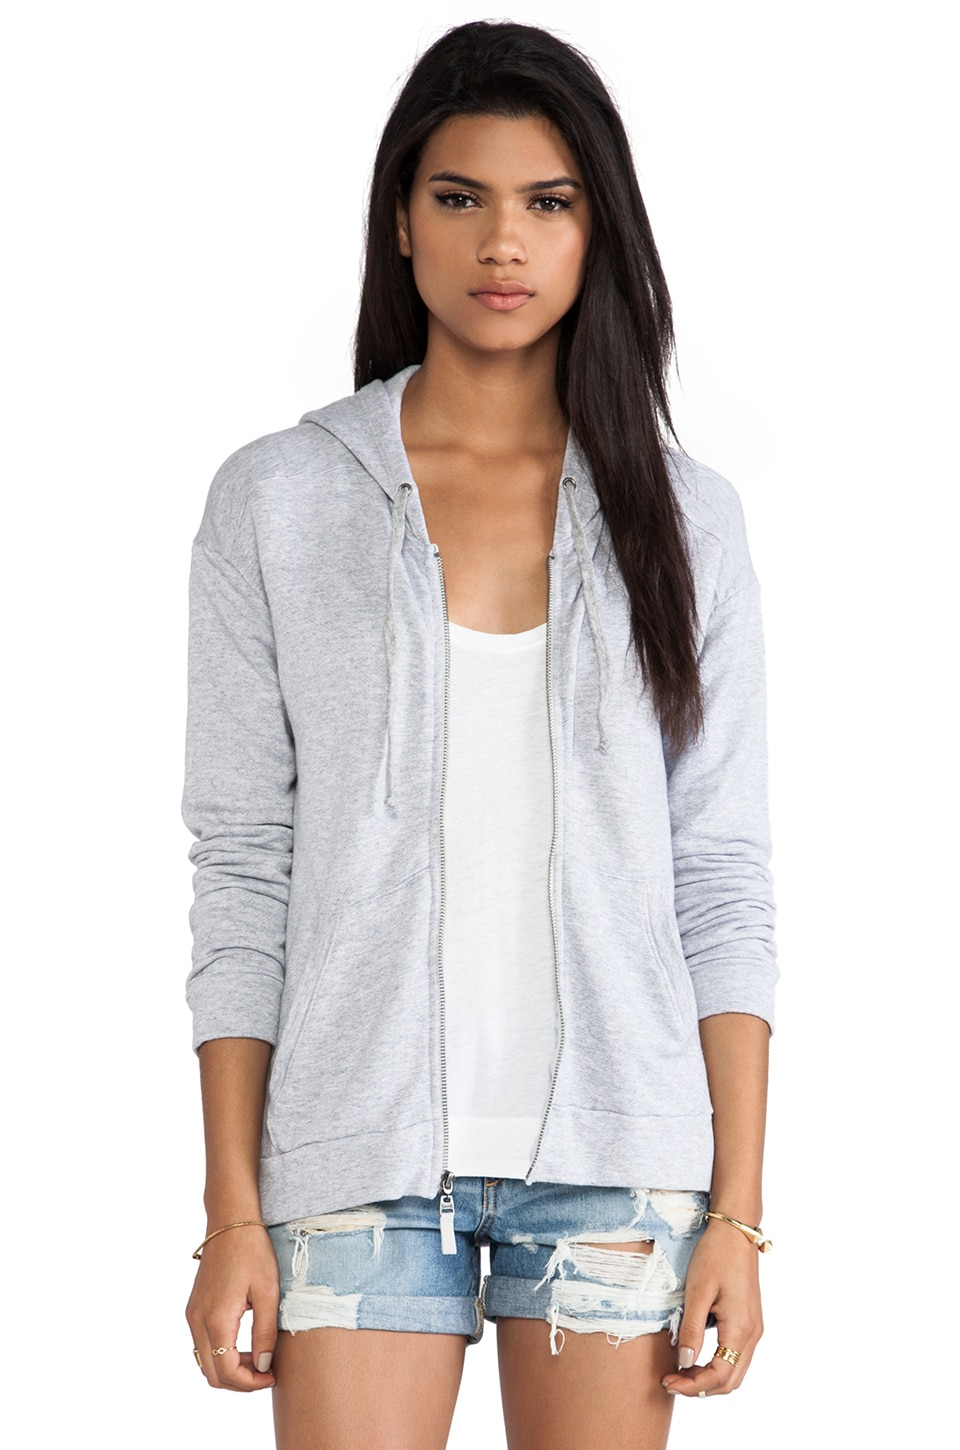 Splendid Soft Melange French Terry Sweatshirt in Heather Grey